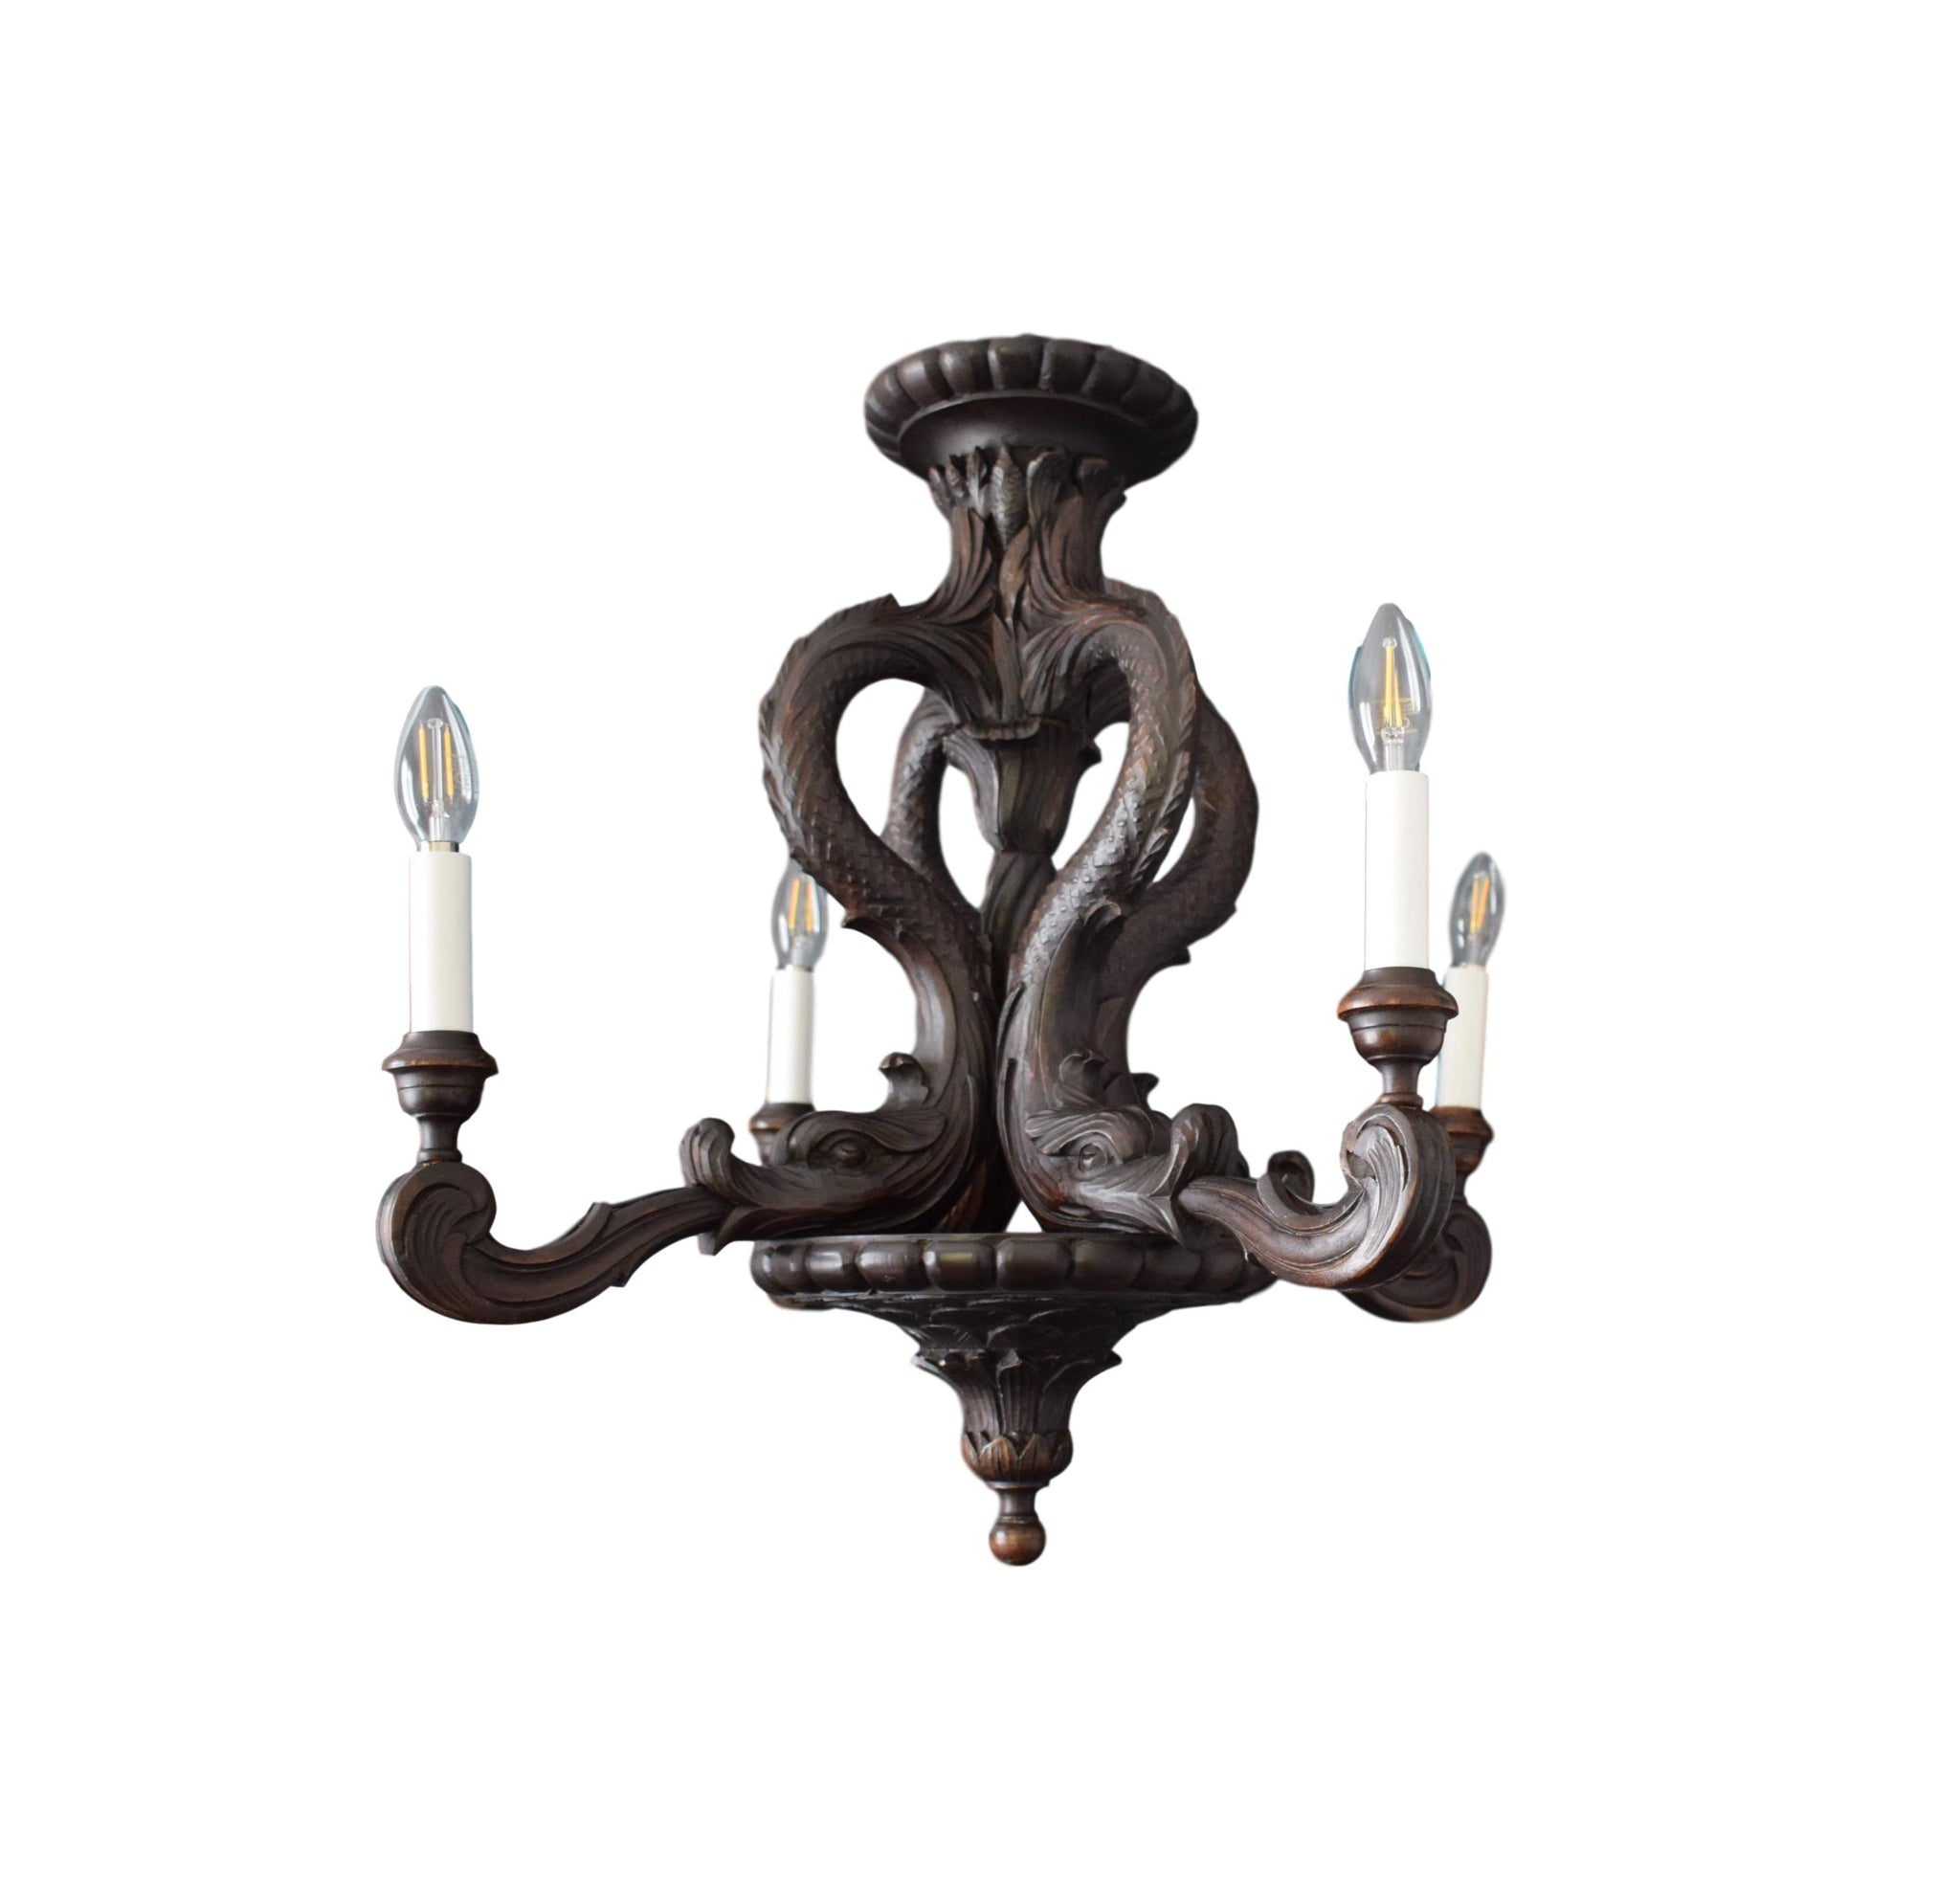 Antique French Hand Carved Wood Large Chandelier - Victorian Ceiling Light - Dolphins 4 Lights